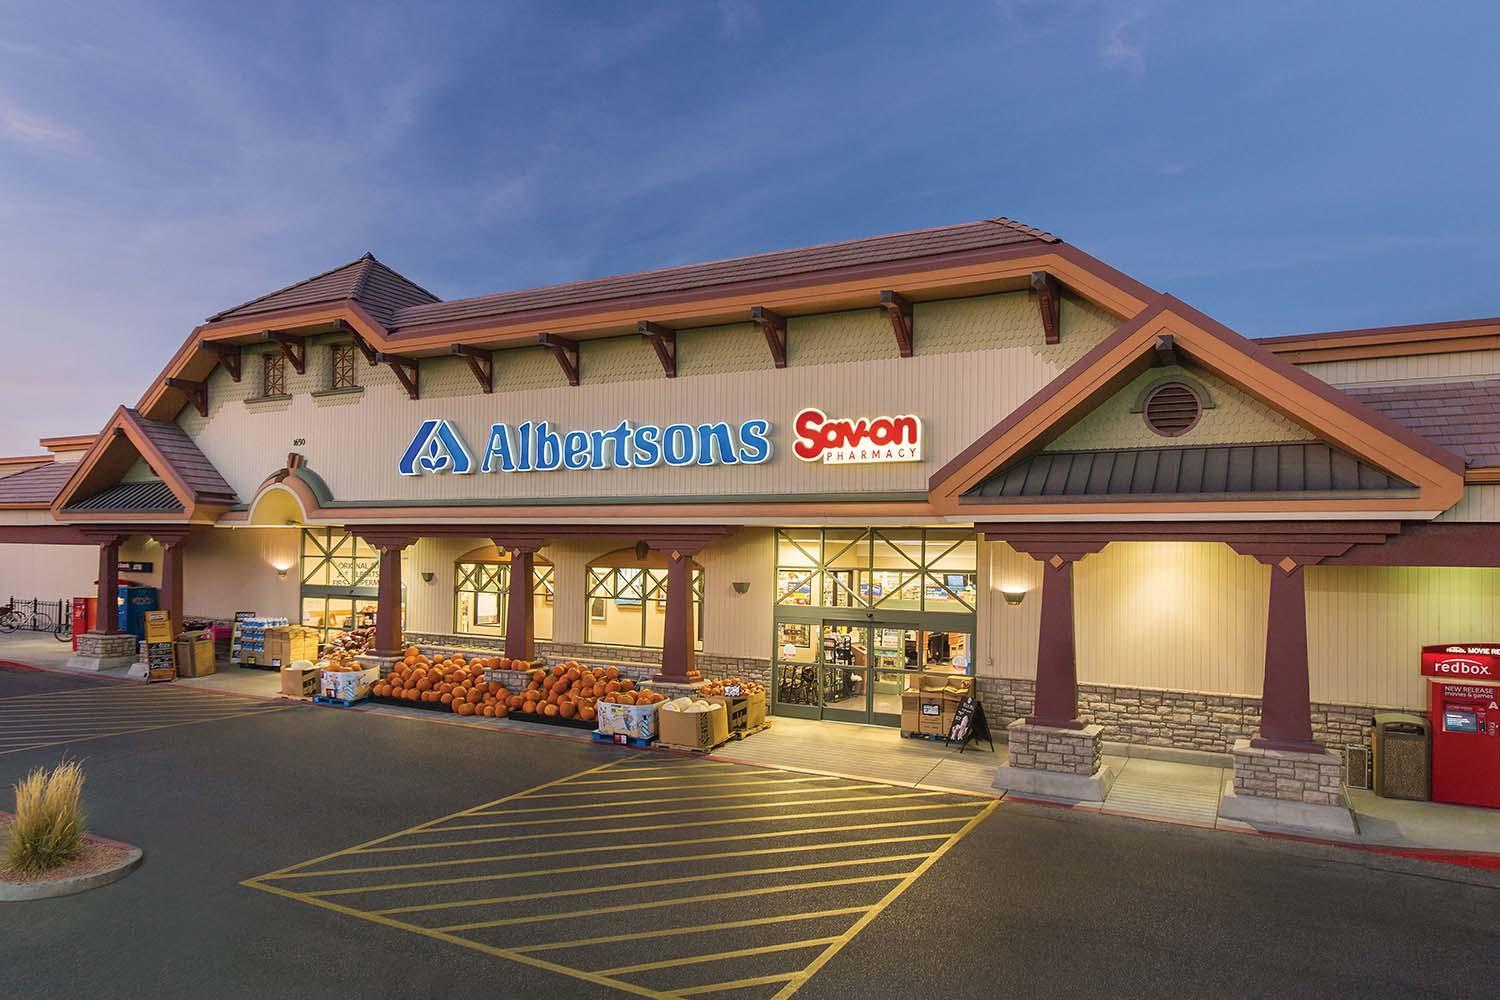 Albertsons Store Front Picture - 2785 N Scottsdale Rd in Scottsdale AZ